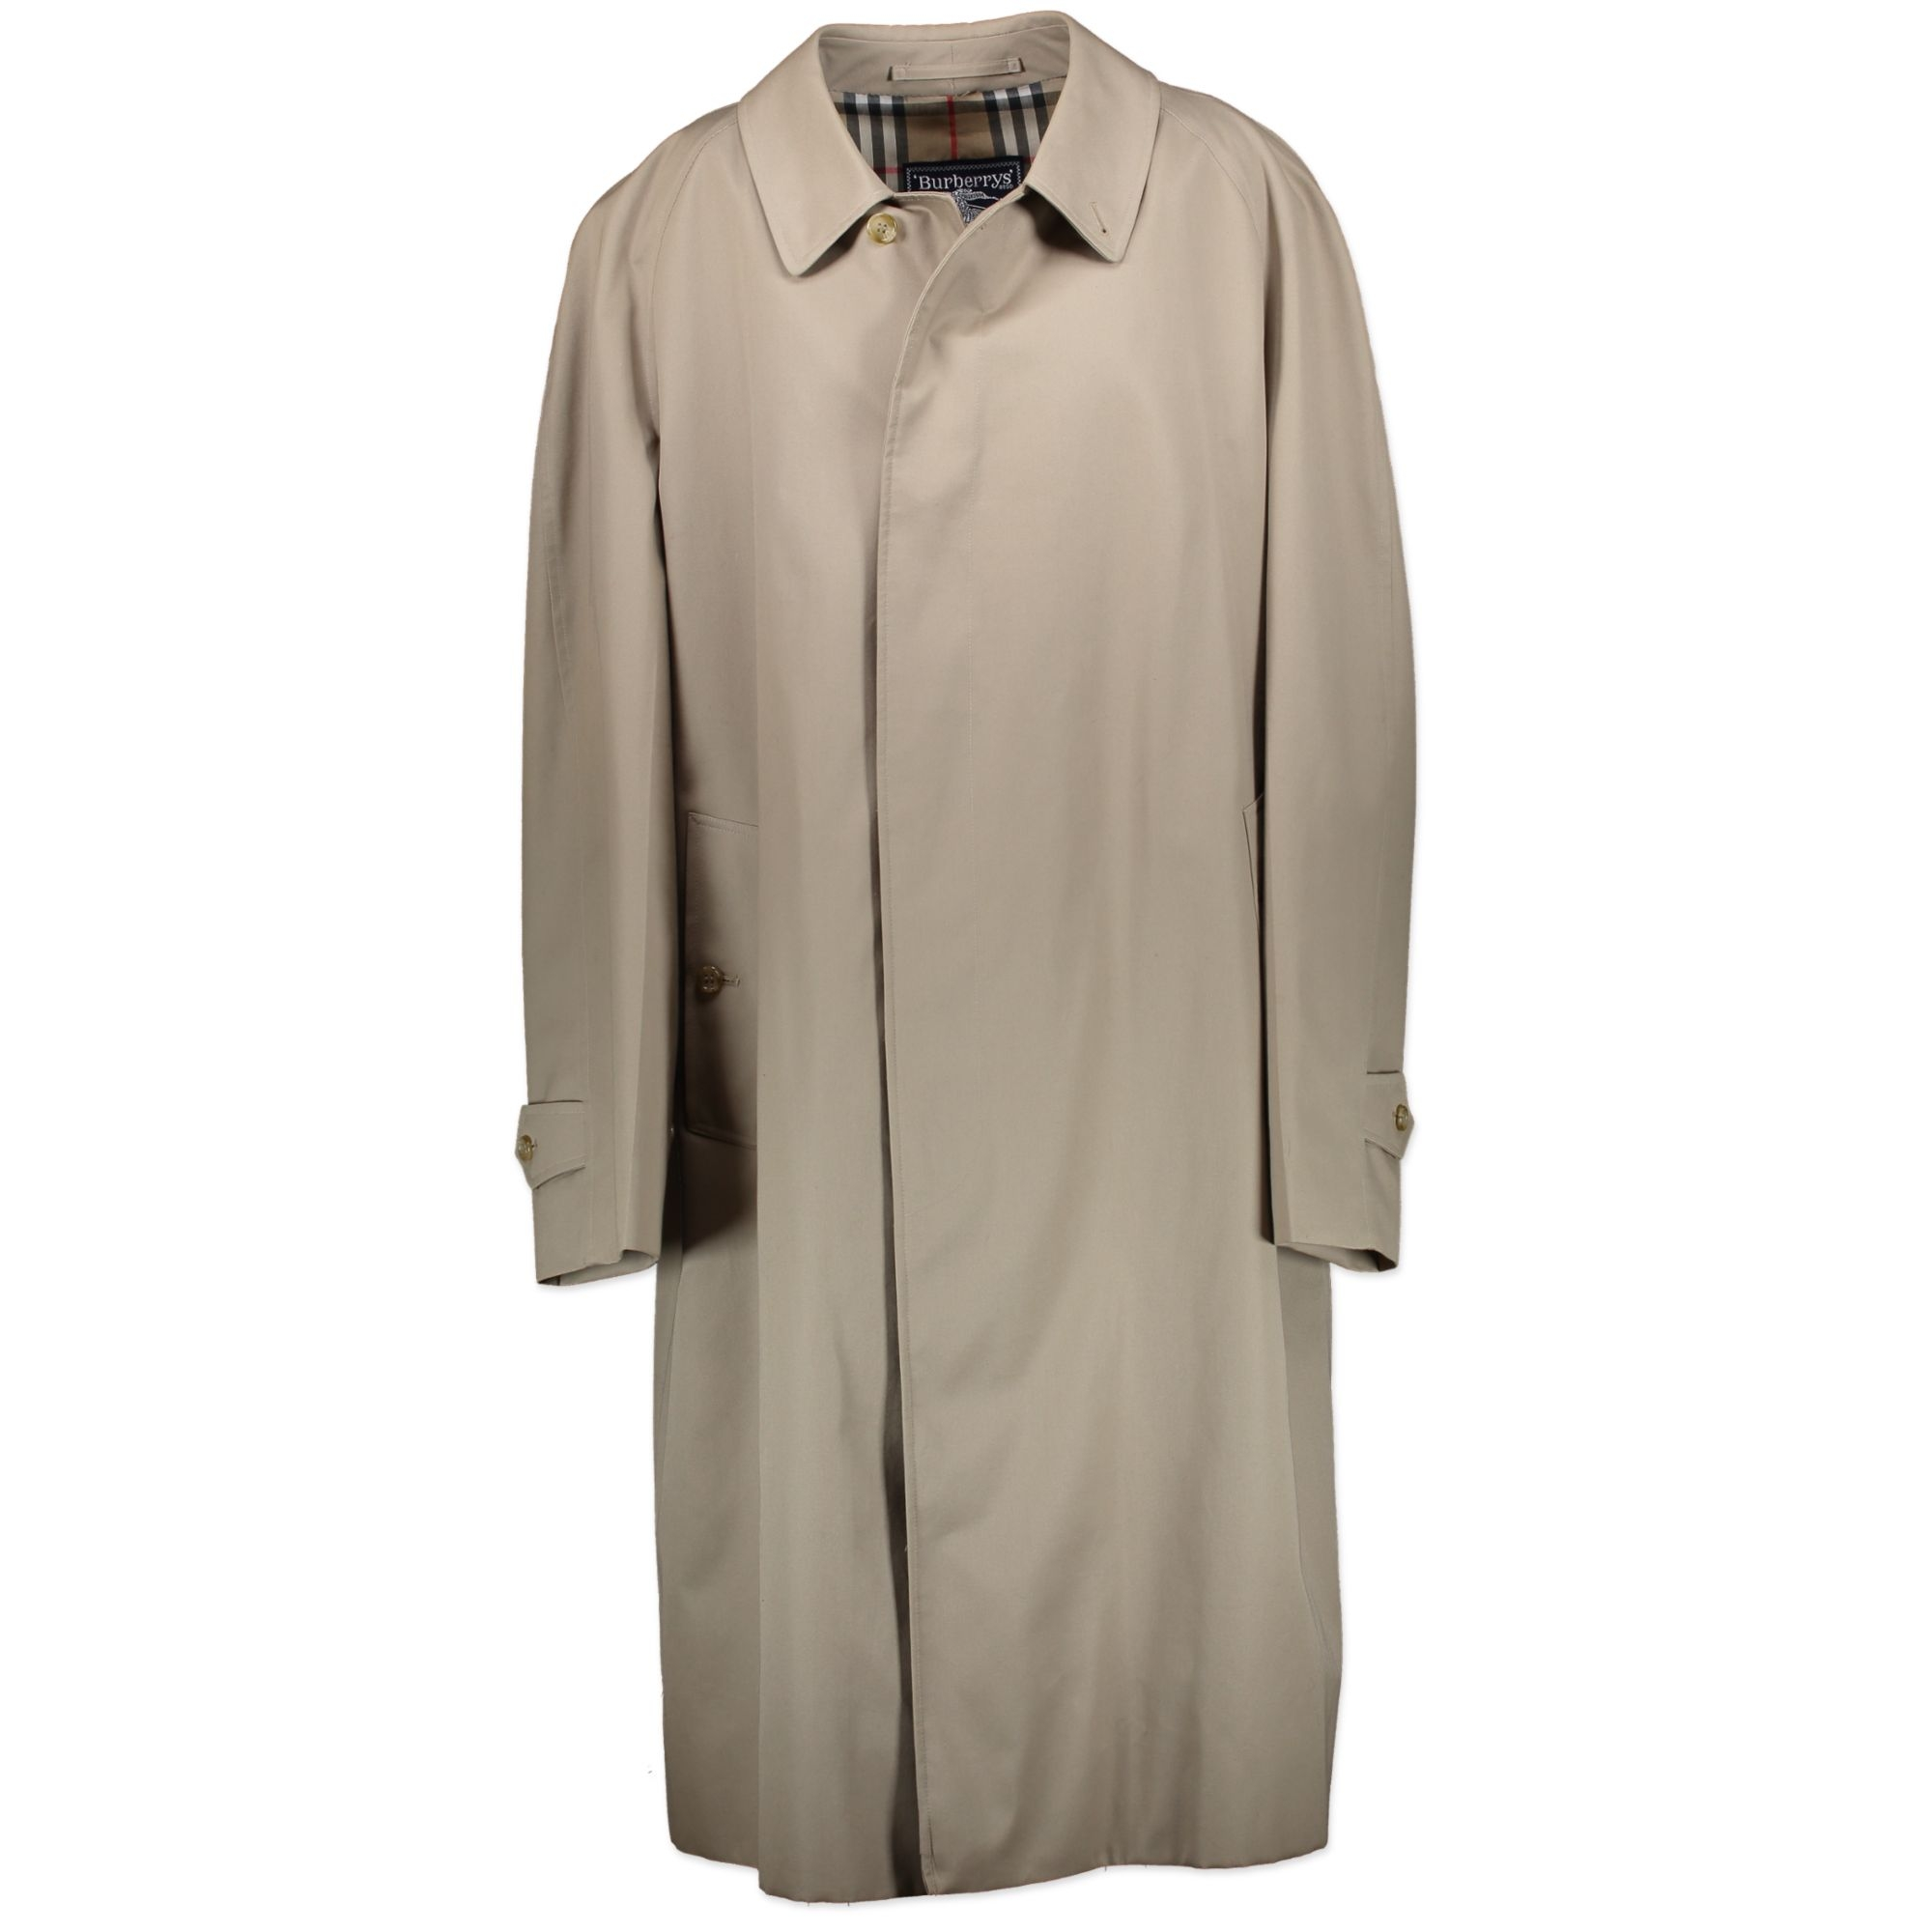 Buy authentic secondhand Burberry trench coat at Labellov vintage designer webshop for the right prices safe and secure online shopping.